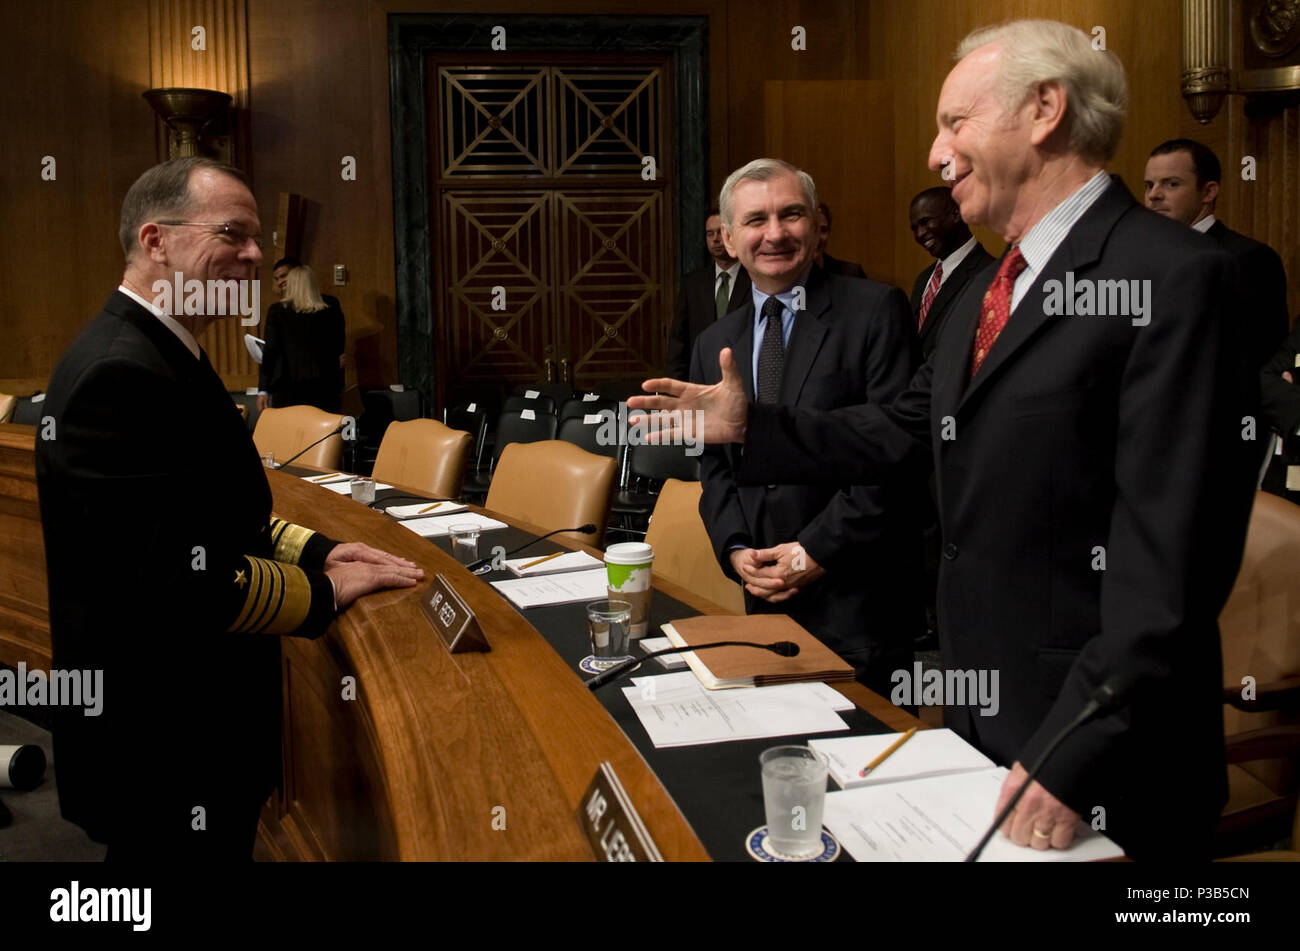 Chairman of the Joint Chiefs of Staff Navy Adm. Mike Mullen greets Sens. Jack Reed and Joe Lieberman prior to his reconfirmation hearing for his second term as chairman at the Dirksen Senate Office Building in Washington, D.C., Sept. 15, 2009. (DoD - Stock Image